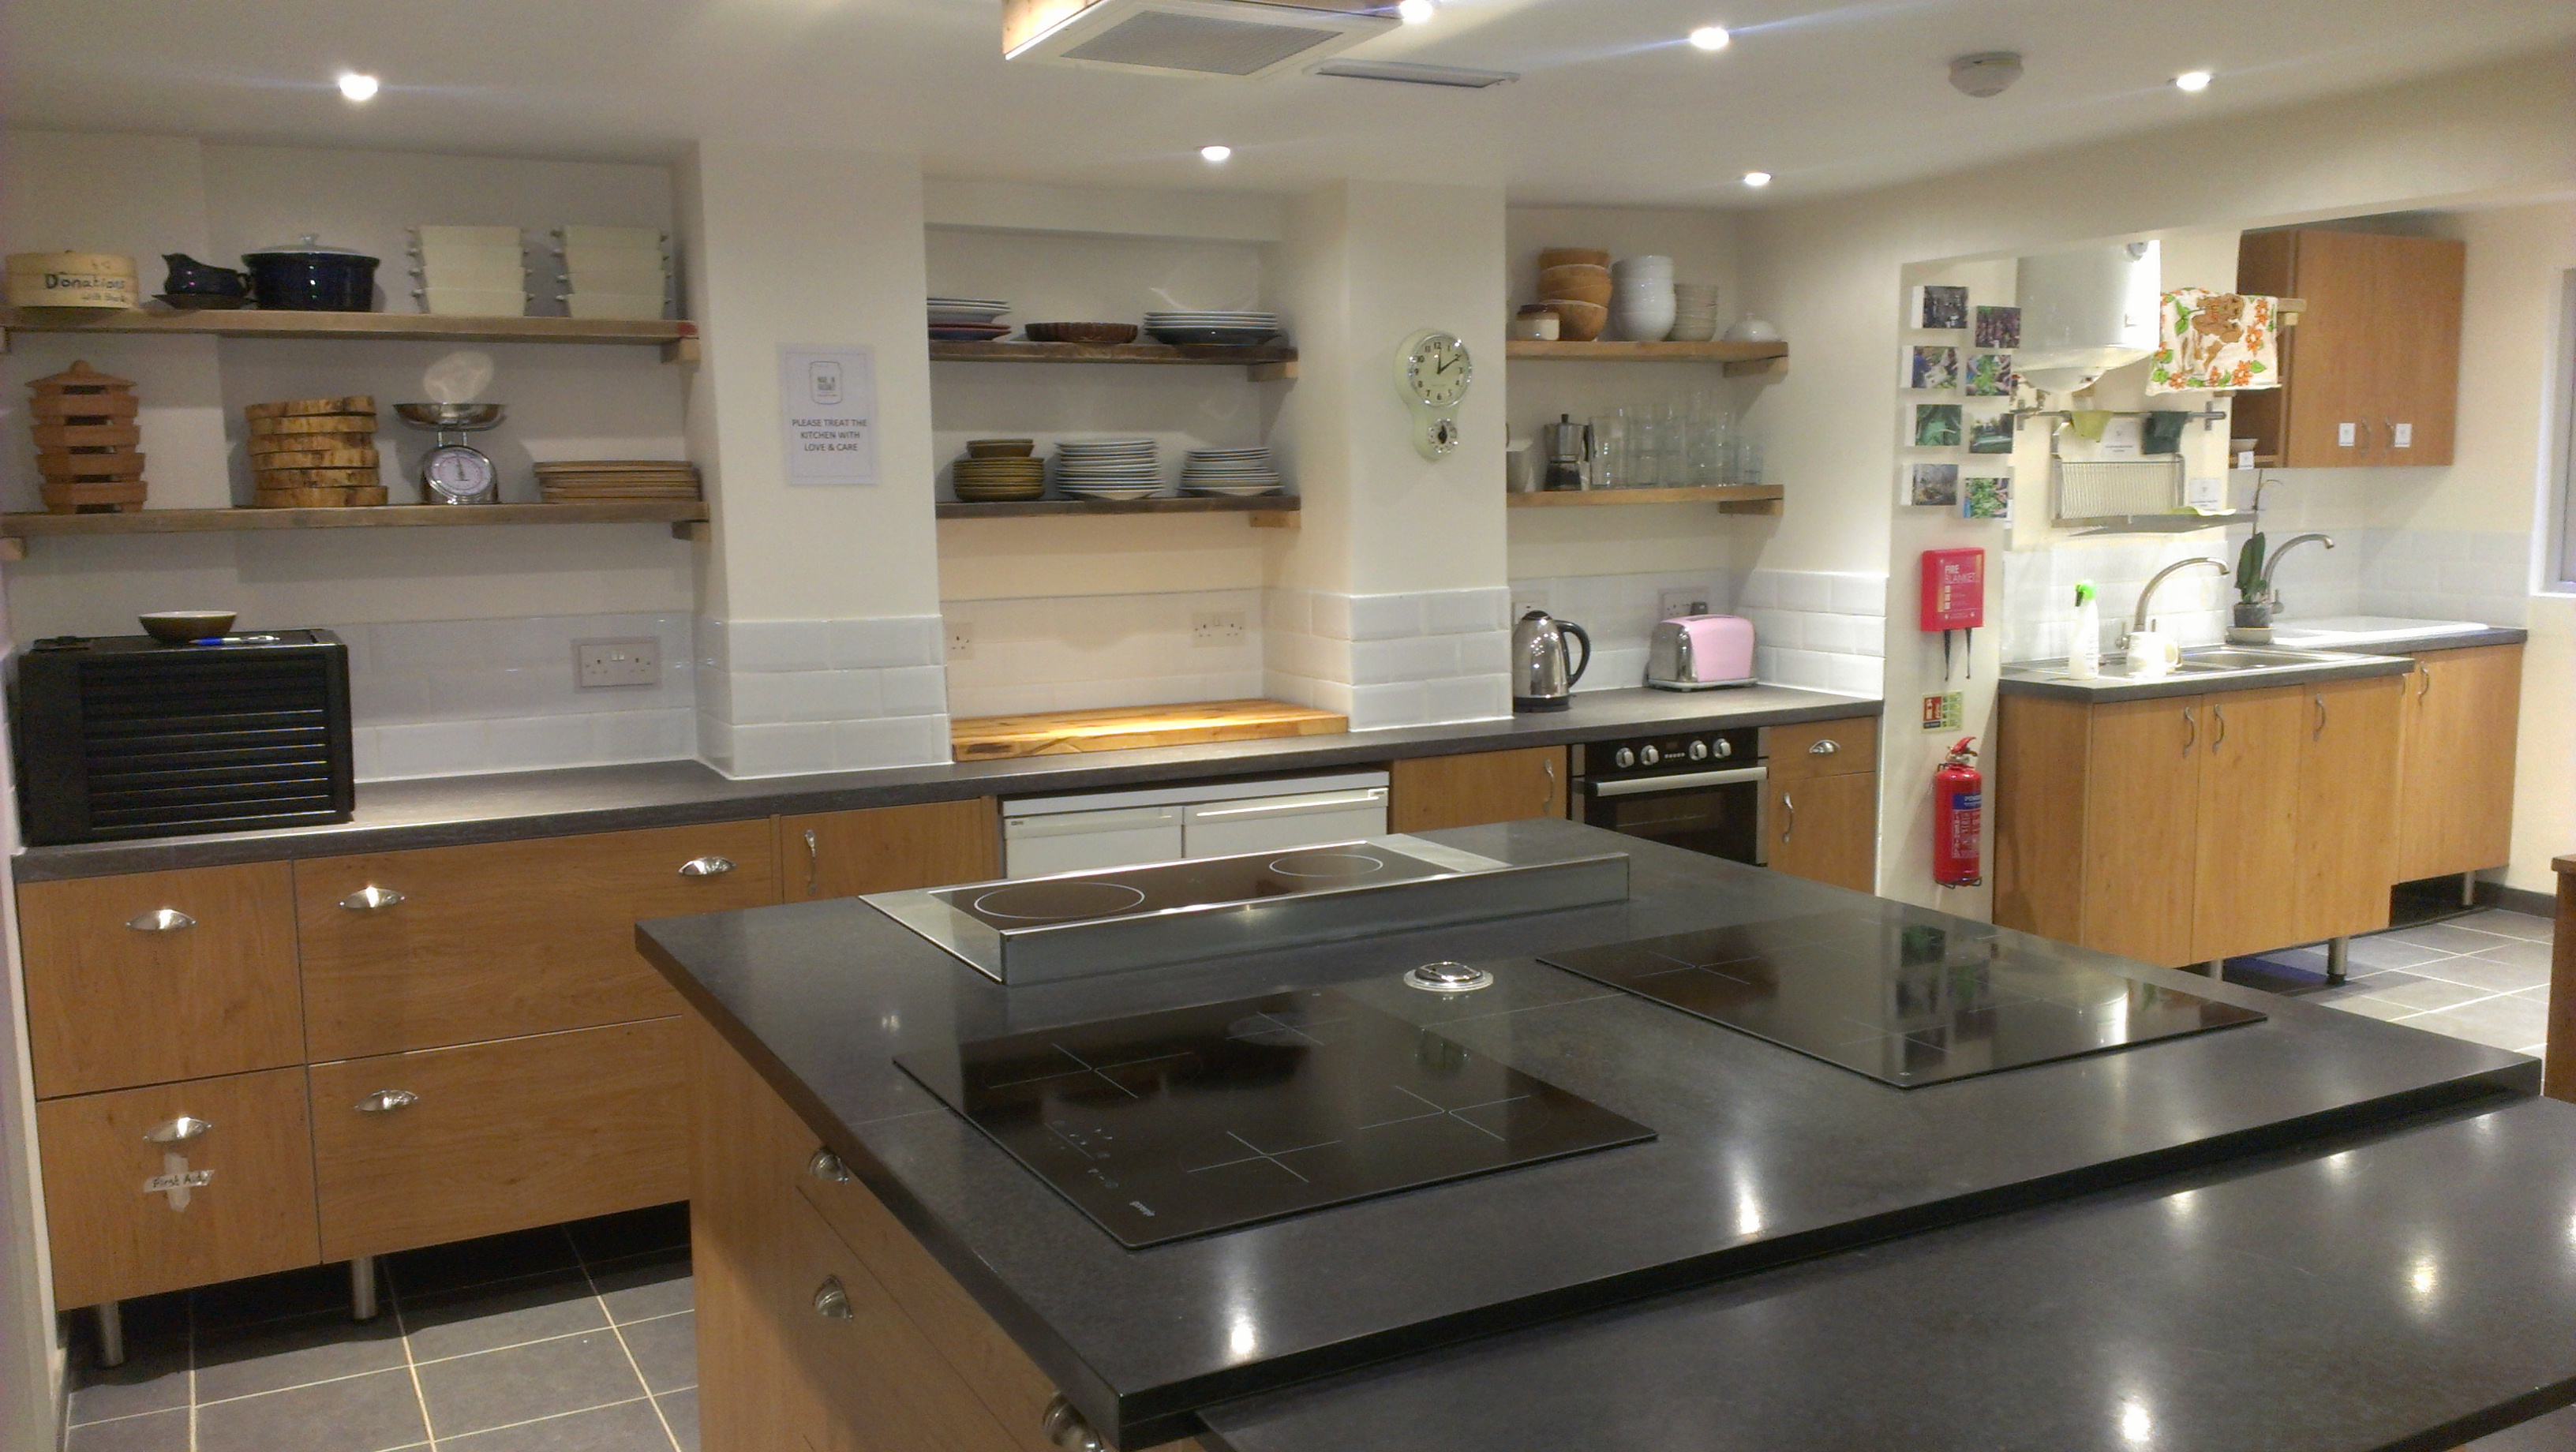 hire made in hackney local food kitchen | see pictures & prices